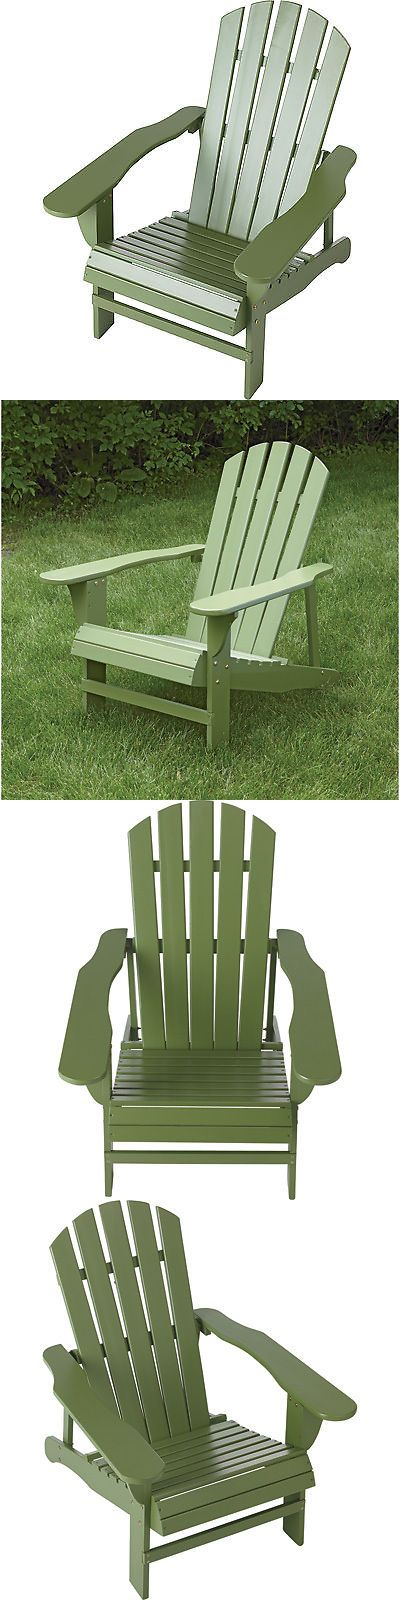 Chairs 79682: Classic Sage Painted Wood Adirondack Chair -> BUY IT NOW ONLY: $59.99 on eBay!